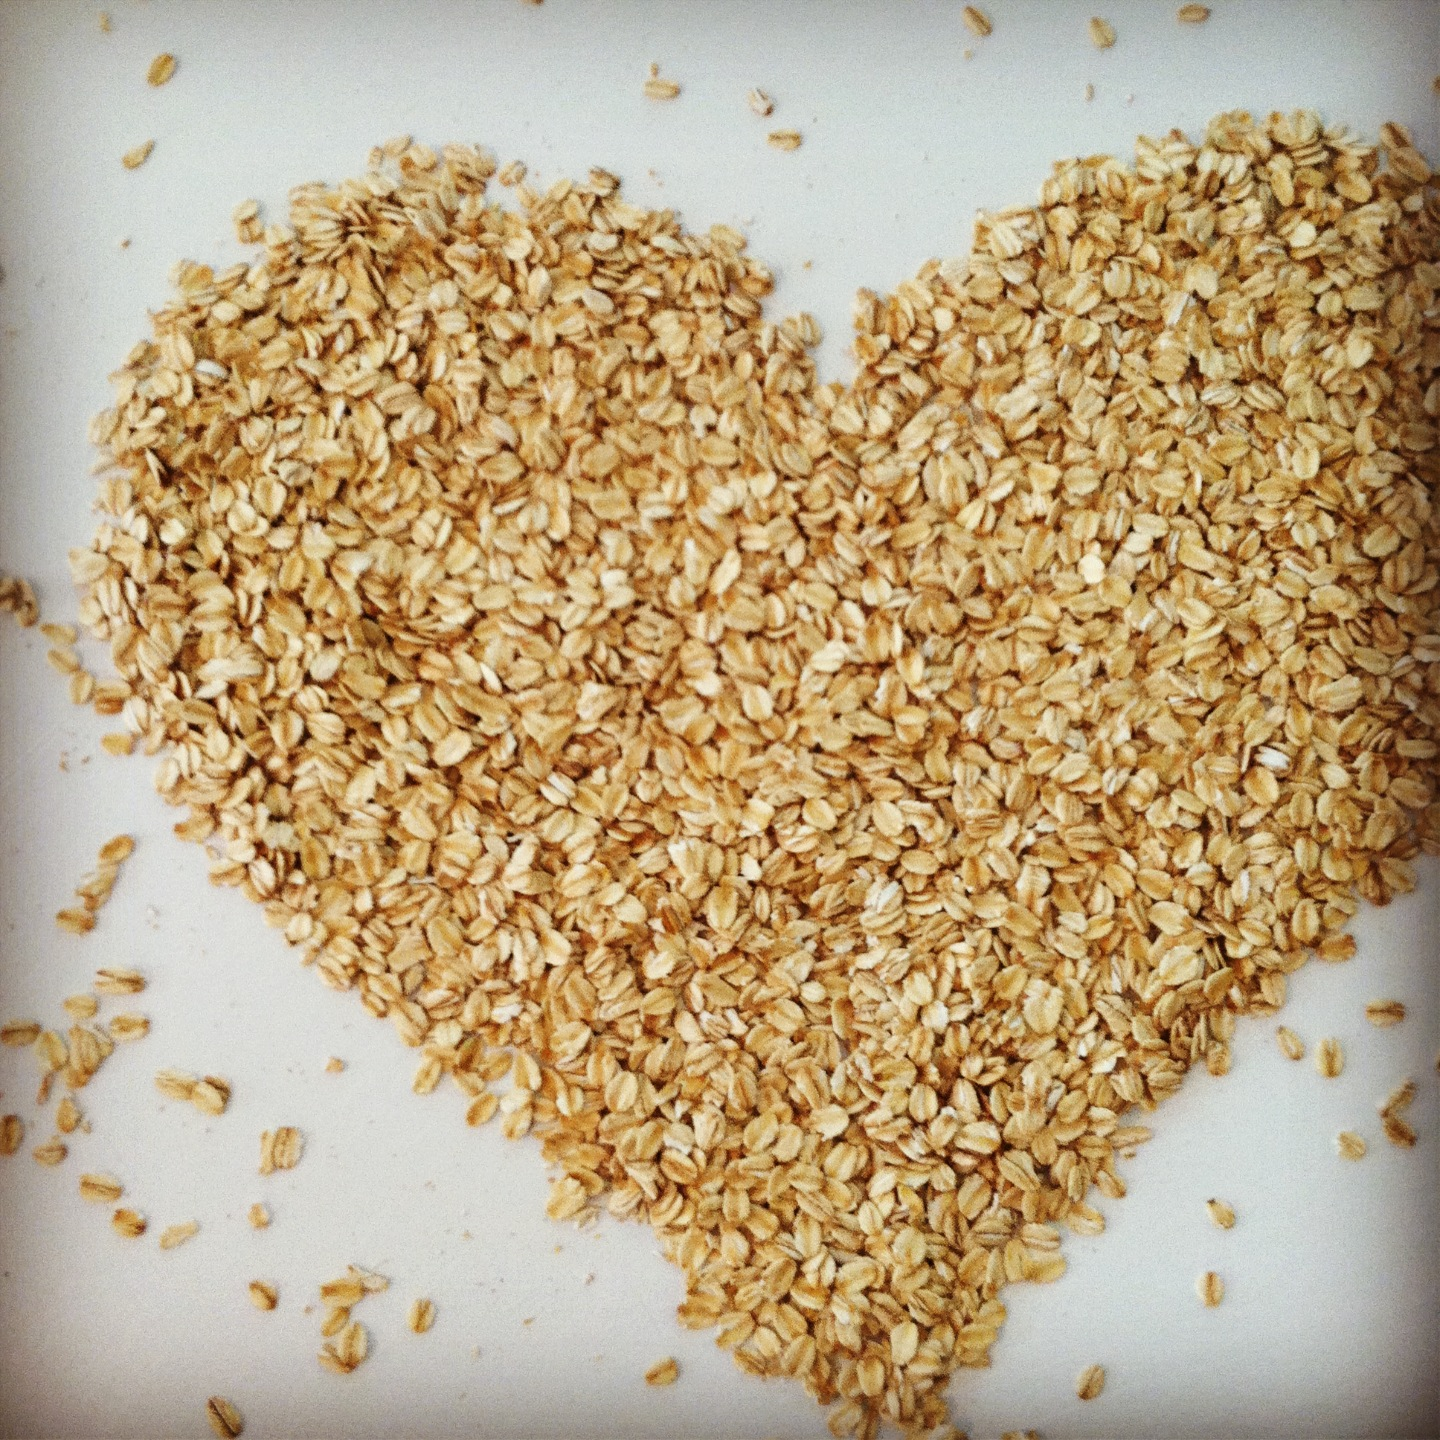 Oats - The Ultimate Superfood